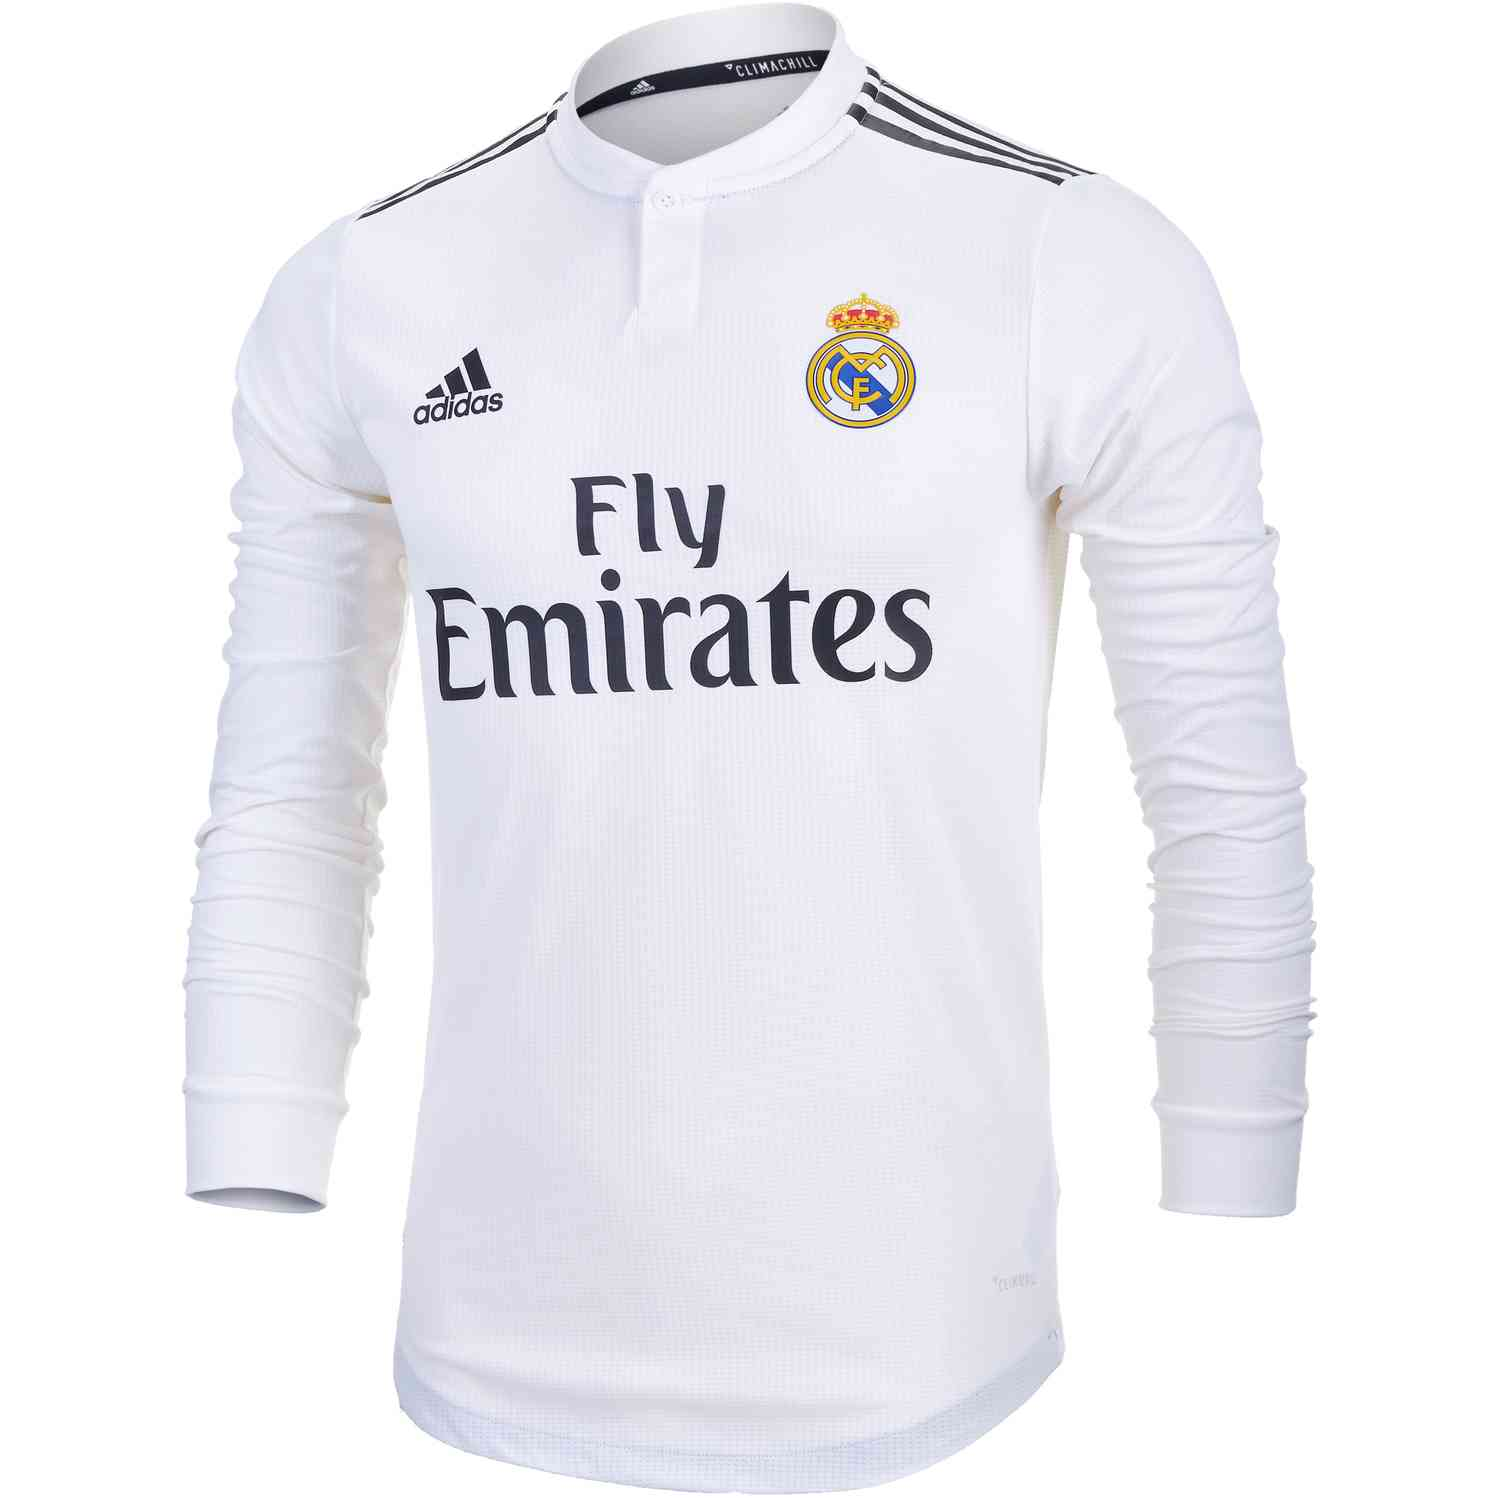 check out 2cbd3 51d70 2018/19 adidas Kids Luka Modric Real Madrid L/S Home Jersey ...